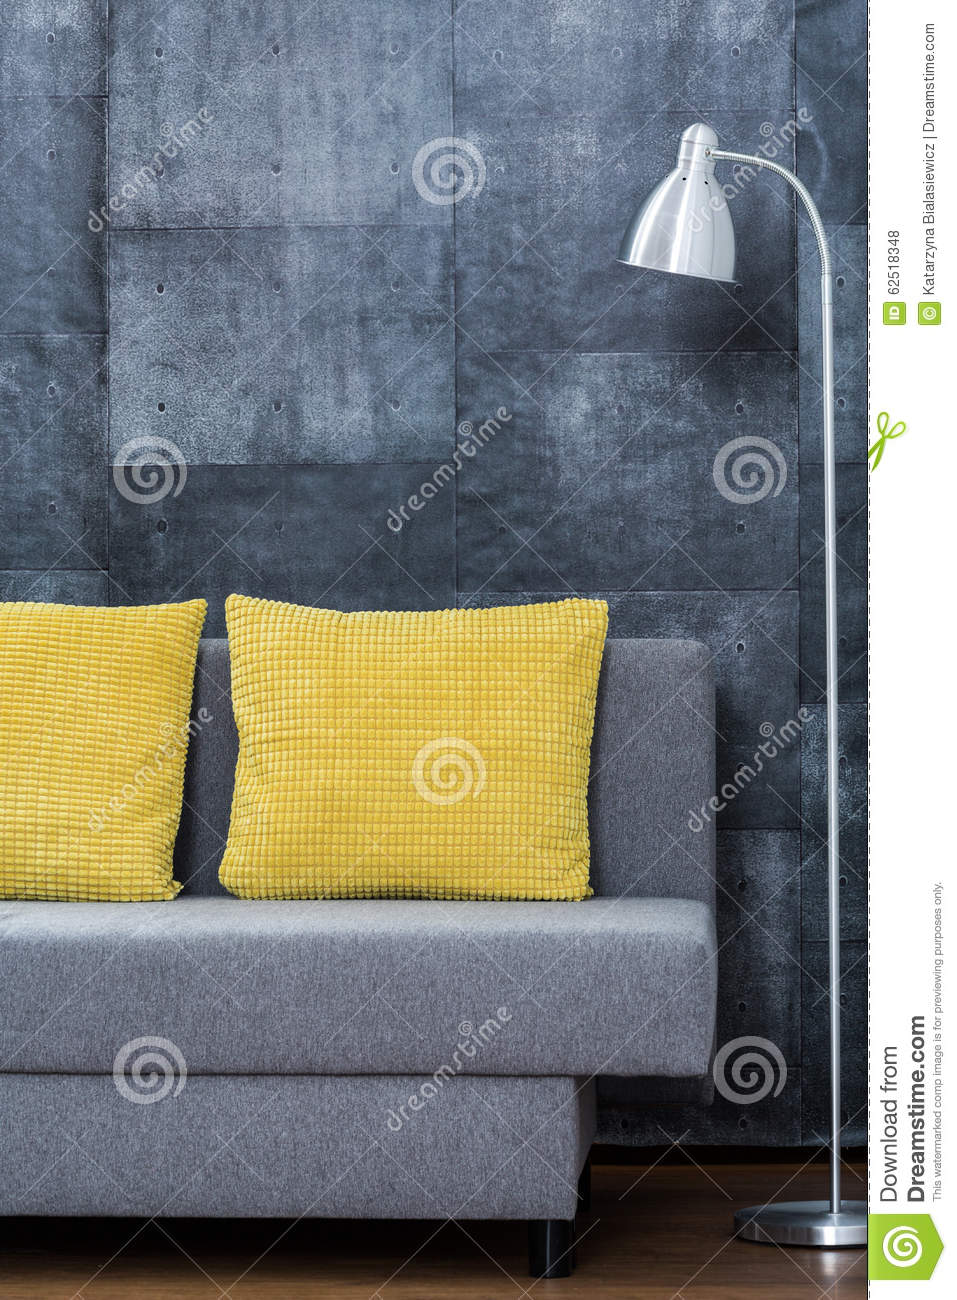 Yellow Decorative Pillows For Sofa : Simple Sofa With Yellow Pillows Stock Photo - Image: 62518348